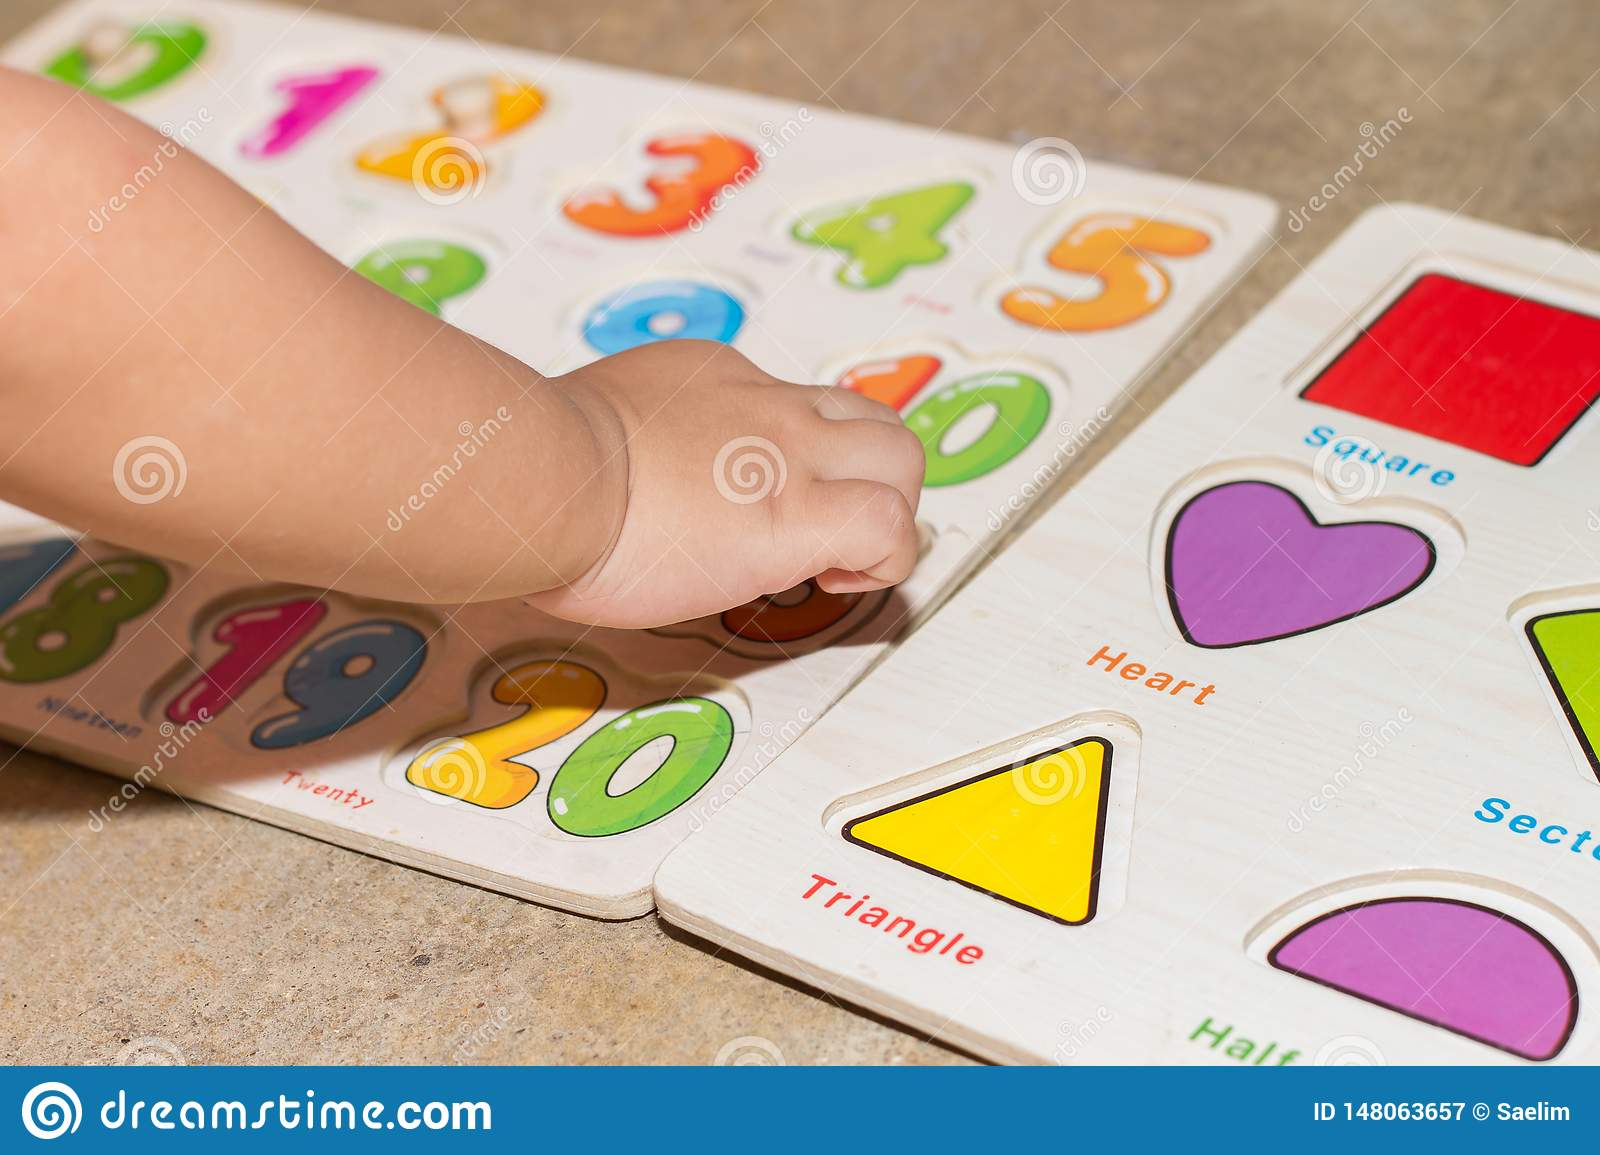 Little Girl With Toy Numbers Educational Games At Home Board Games For Children Modern Learning Girl Learning Counting Number Toy Stock Image Image Of Learning Children 148063657